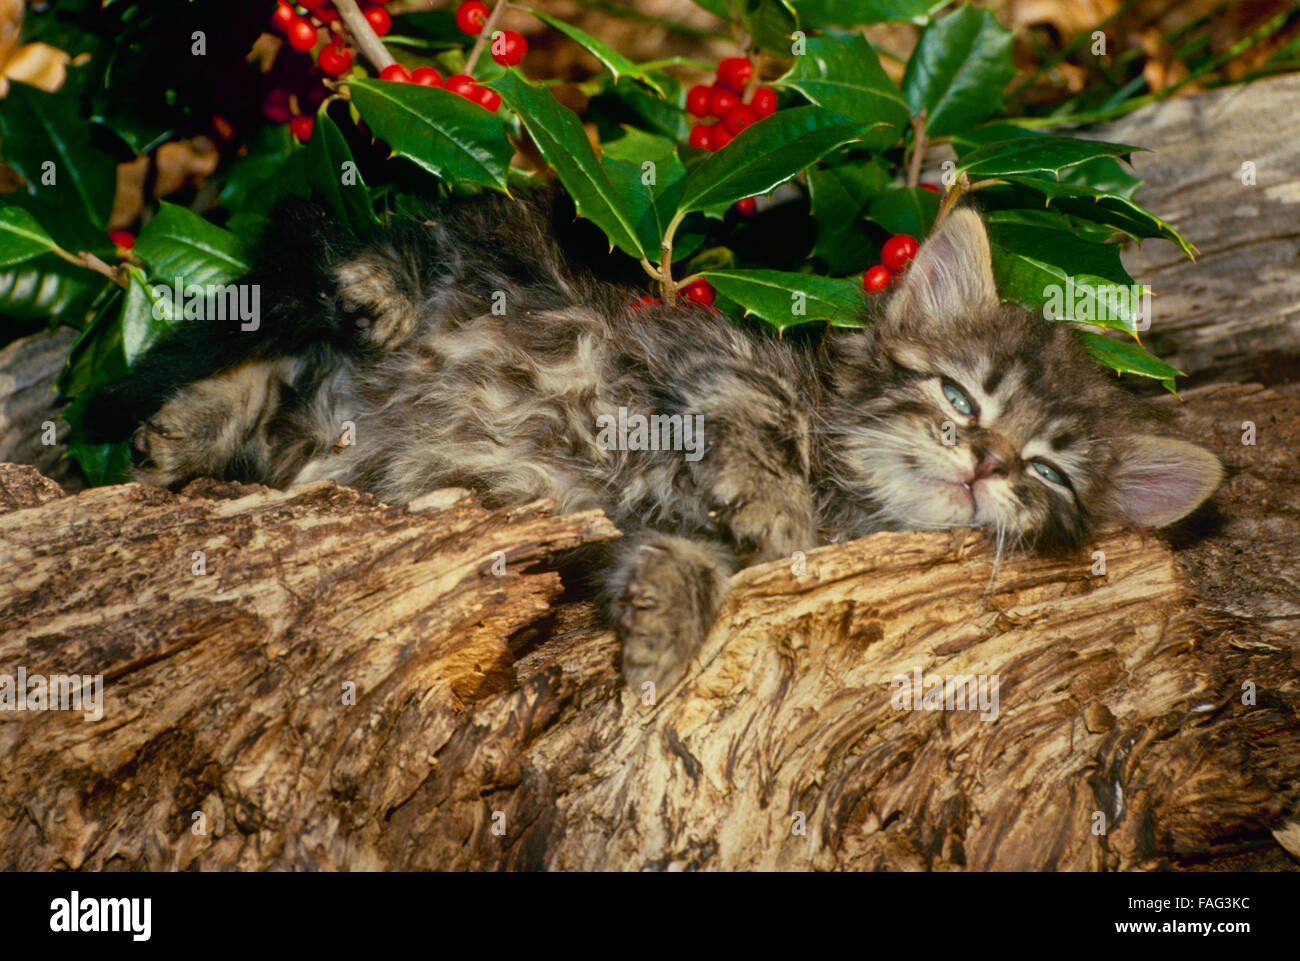 Sleepy tabby kitten (Felis catus) stretches out in garden by American holly bush with bright red berries, Midwest - Stock Image